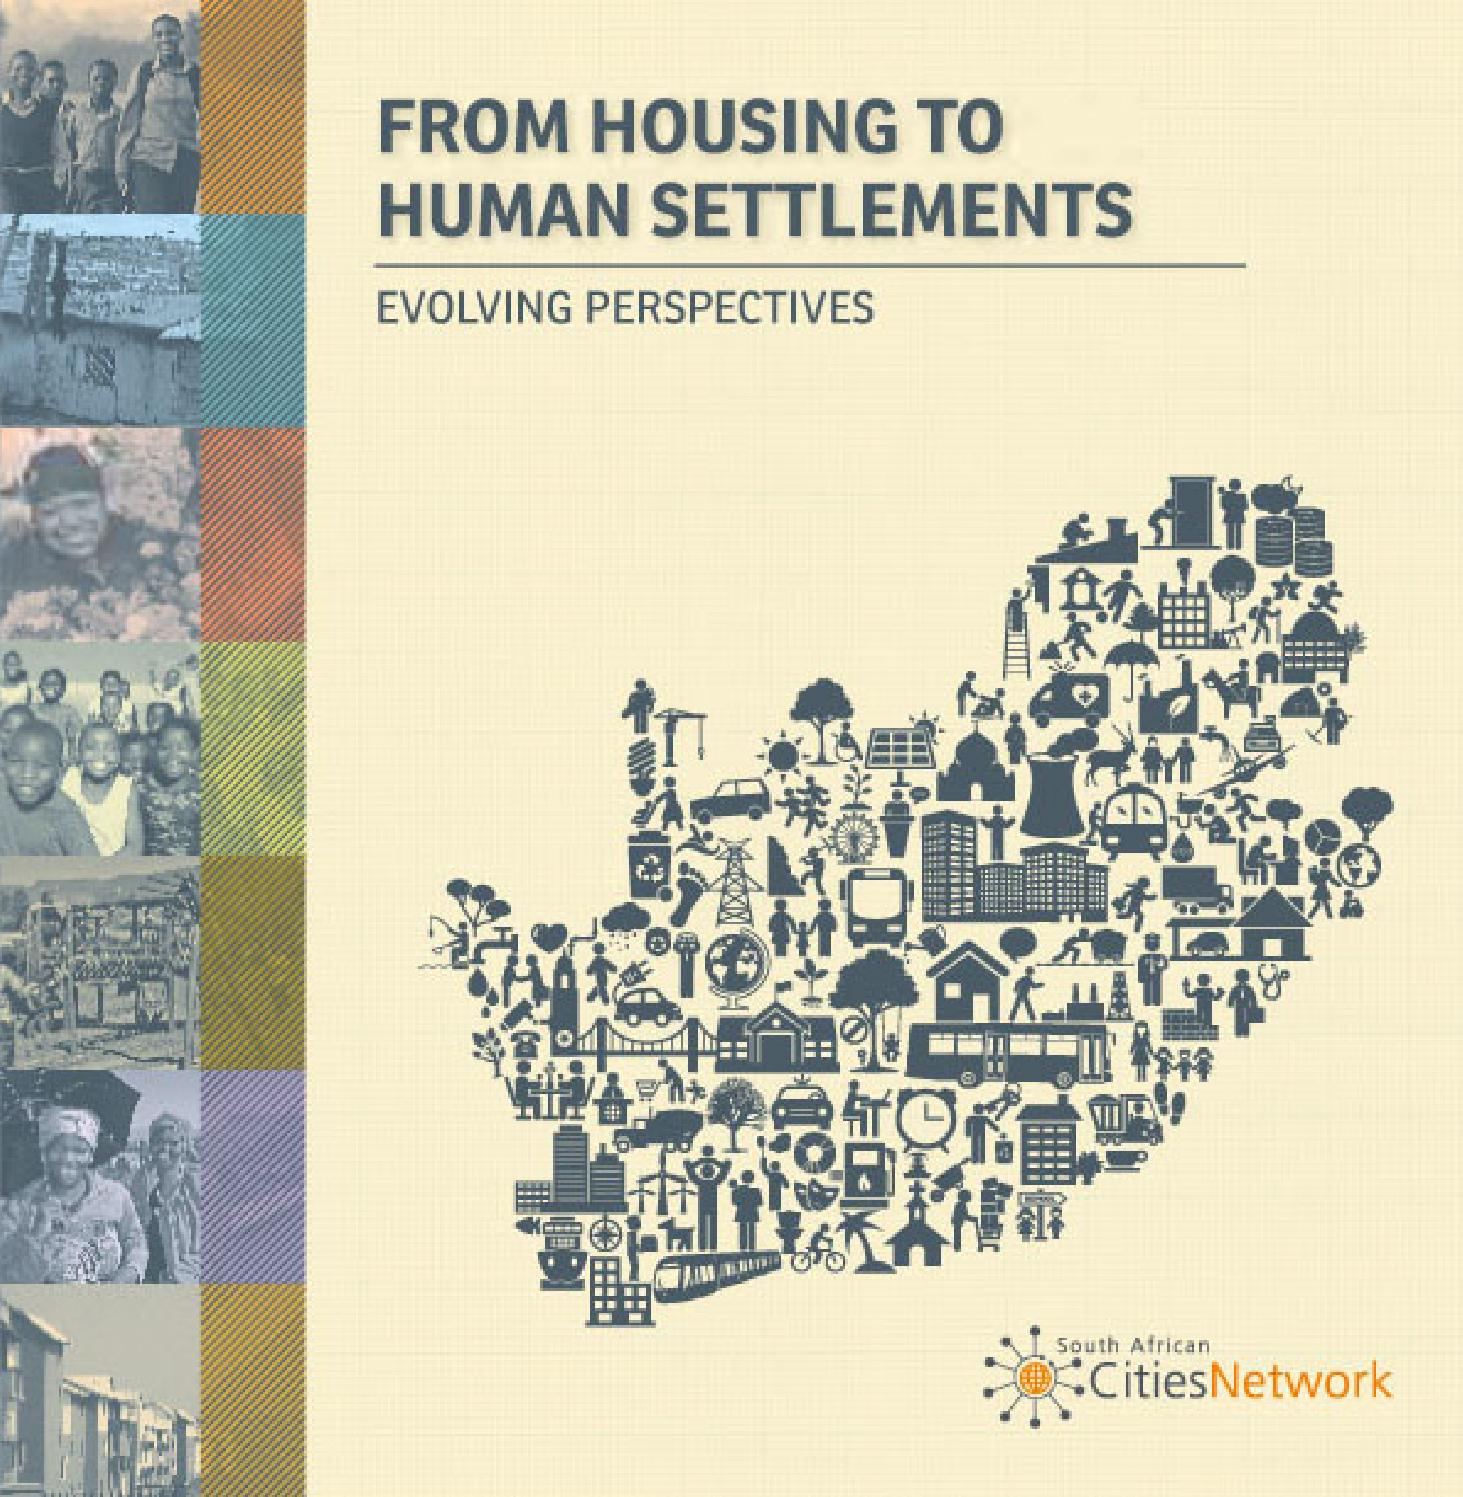 international research paper on housing settlement Though the pace of economic research on housing in developing countries has increased rapidly in recent years, 2 there is still very little empirical work analyzing housing policy in developing countries that is persuasive by modern.